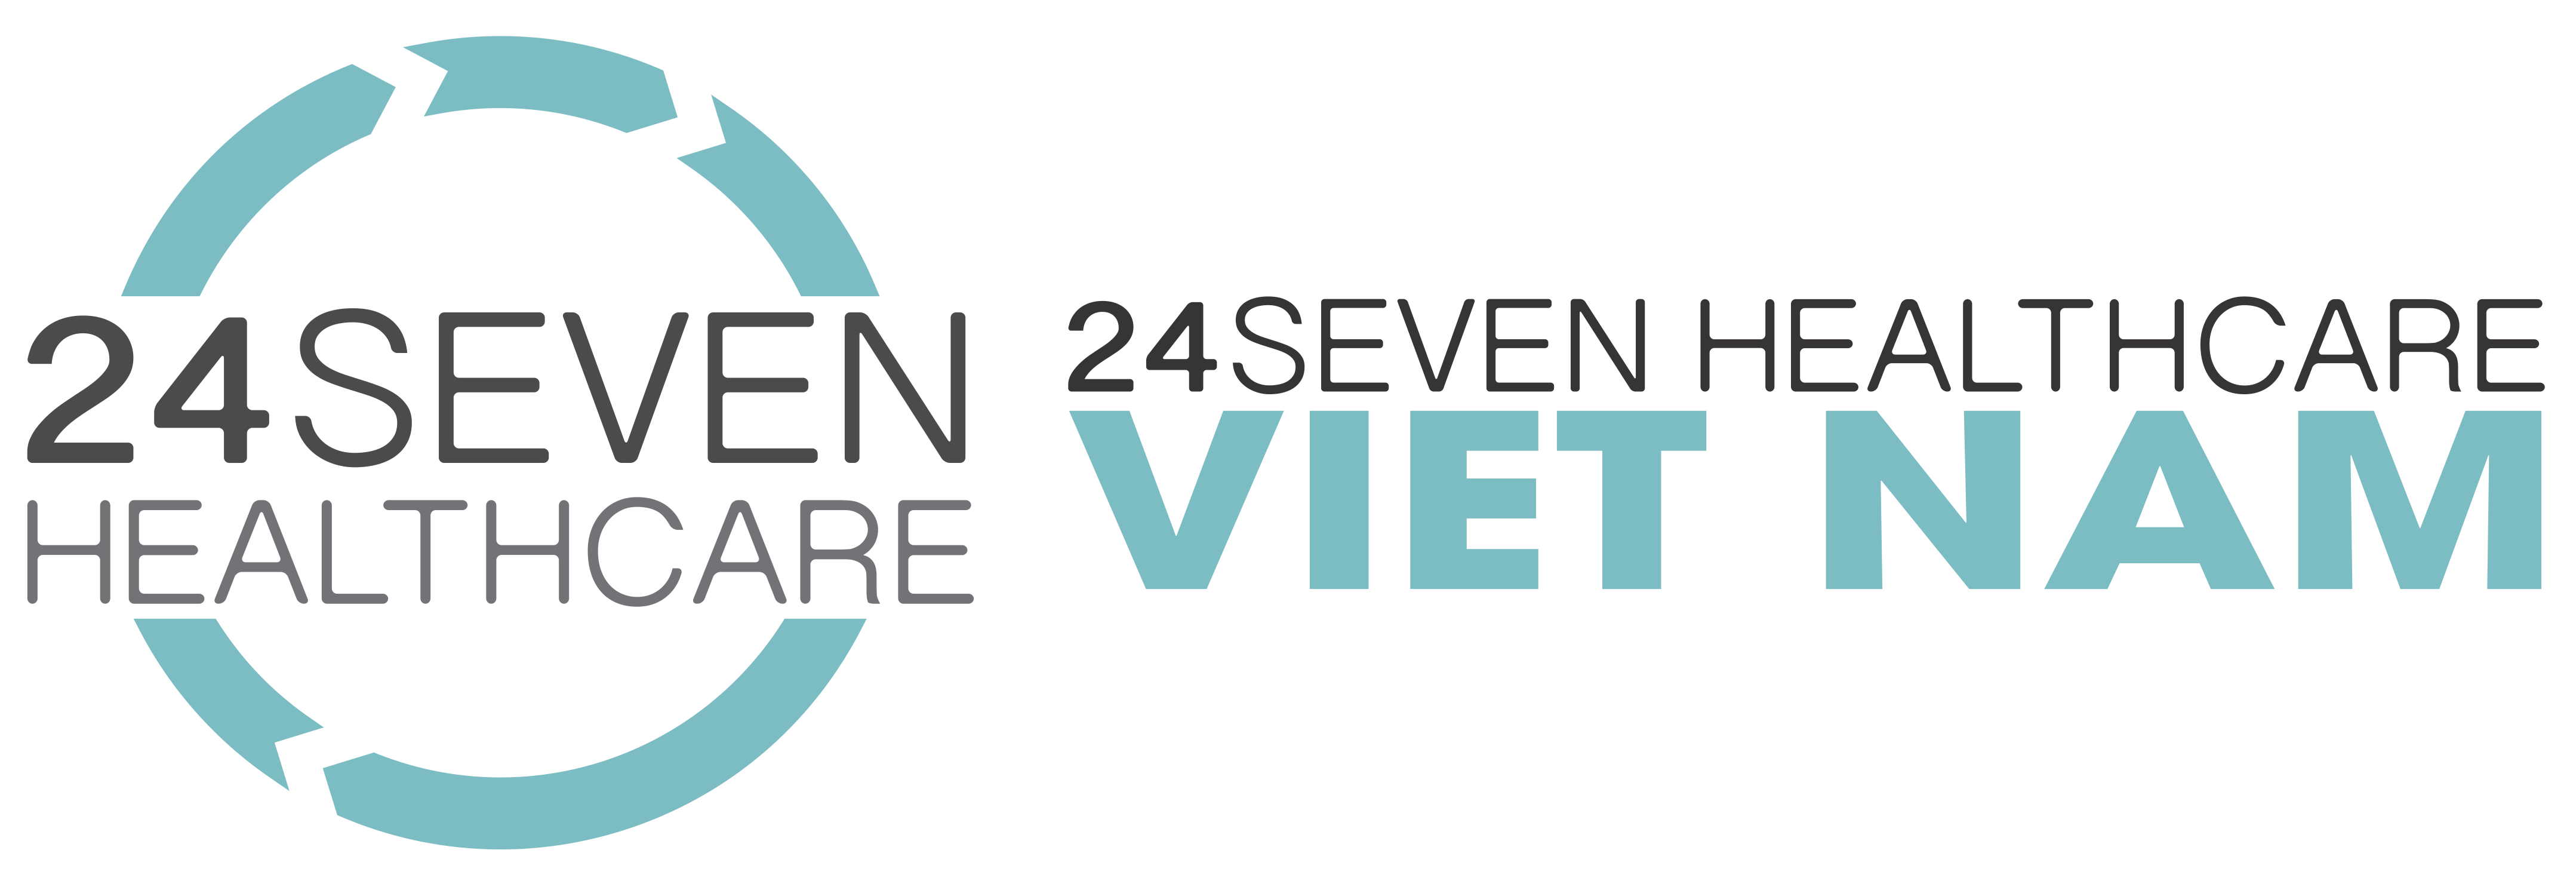 24 SEVEN HEALTH CARE VIET NAM